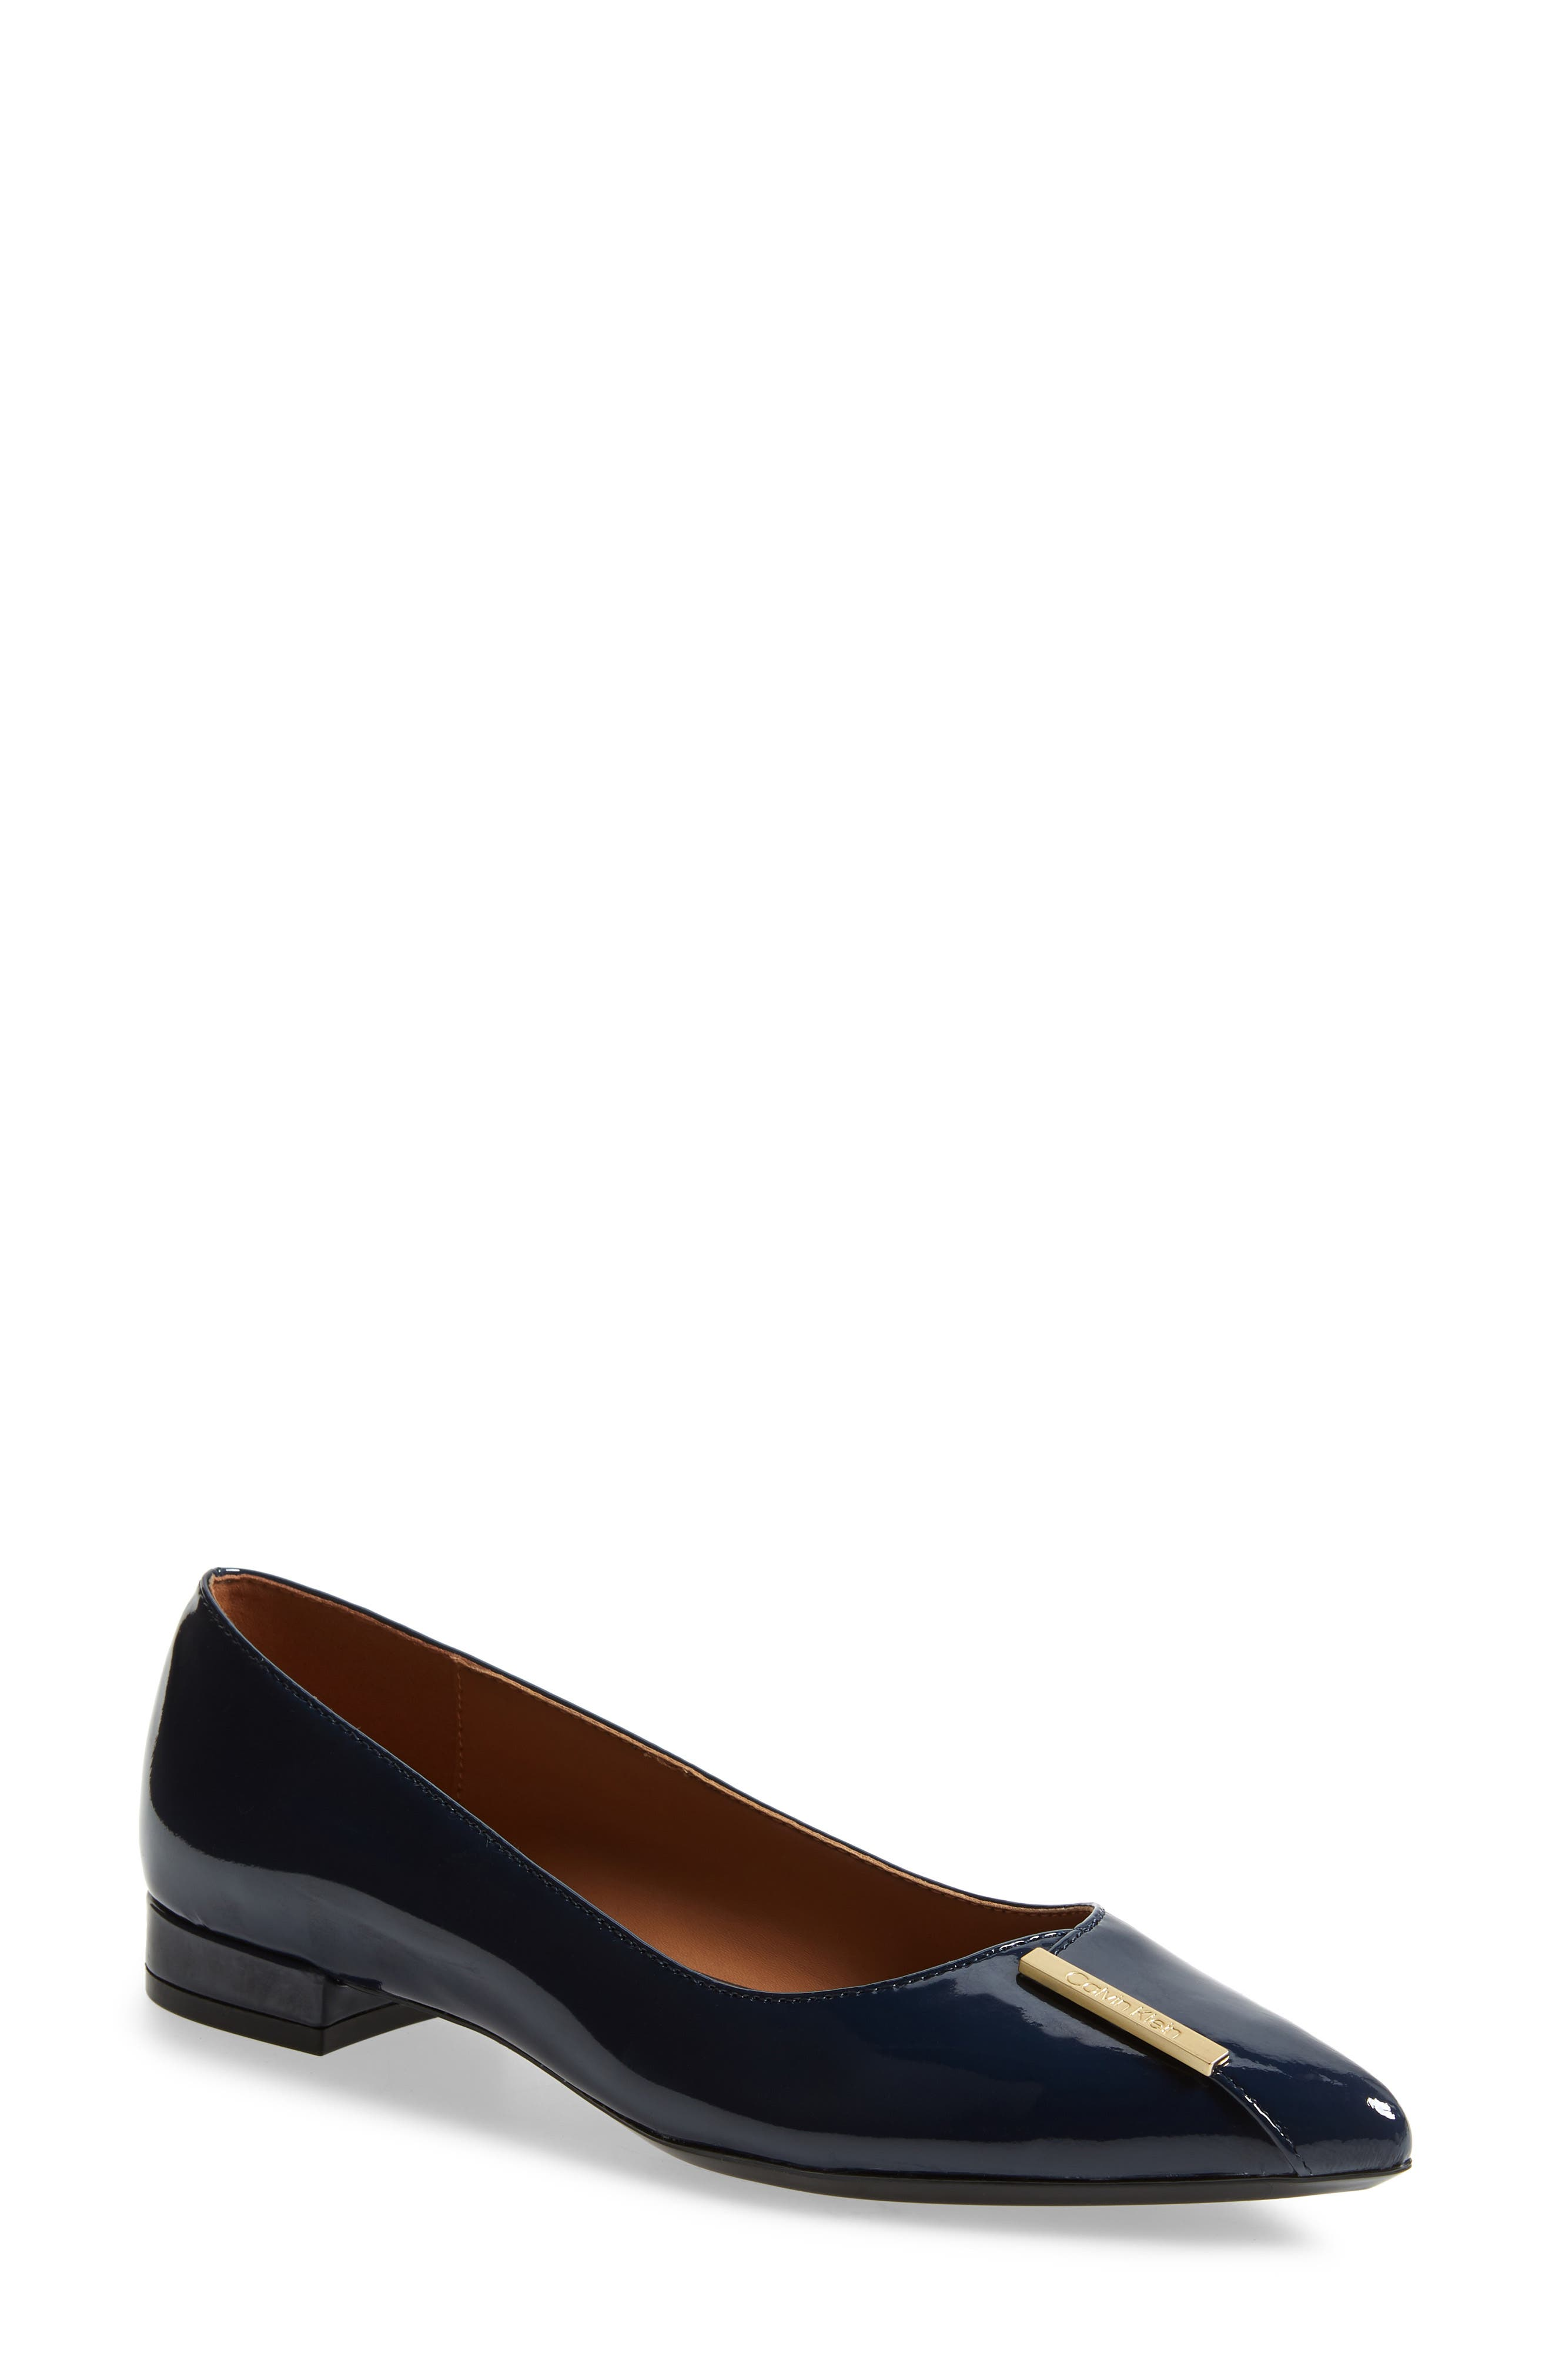 Arline Pointy Toe Flat,                         Main,                         color, NAVY PATENT LEATHER